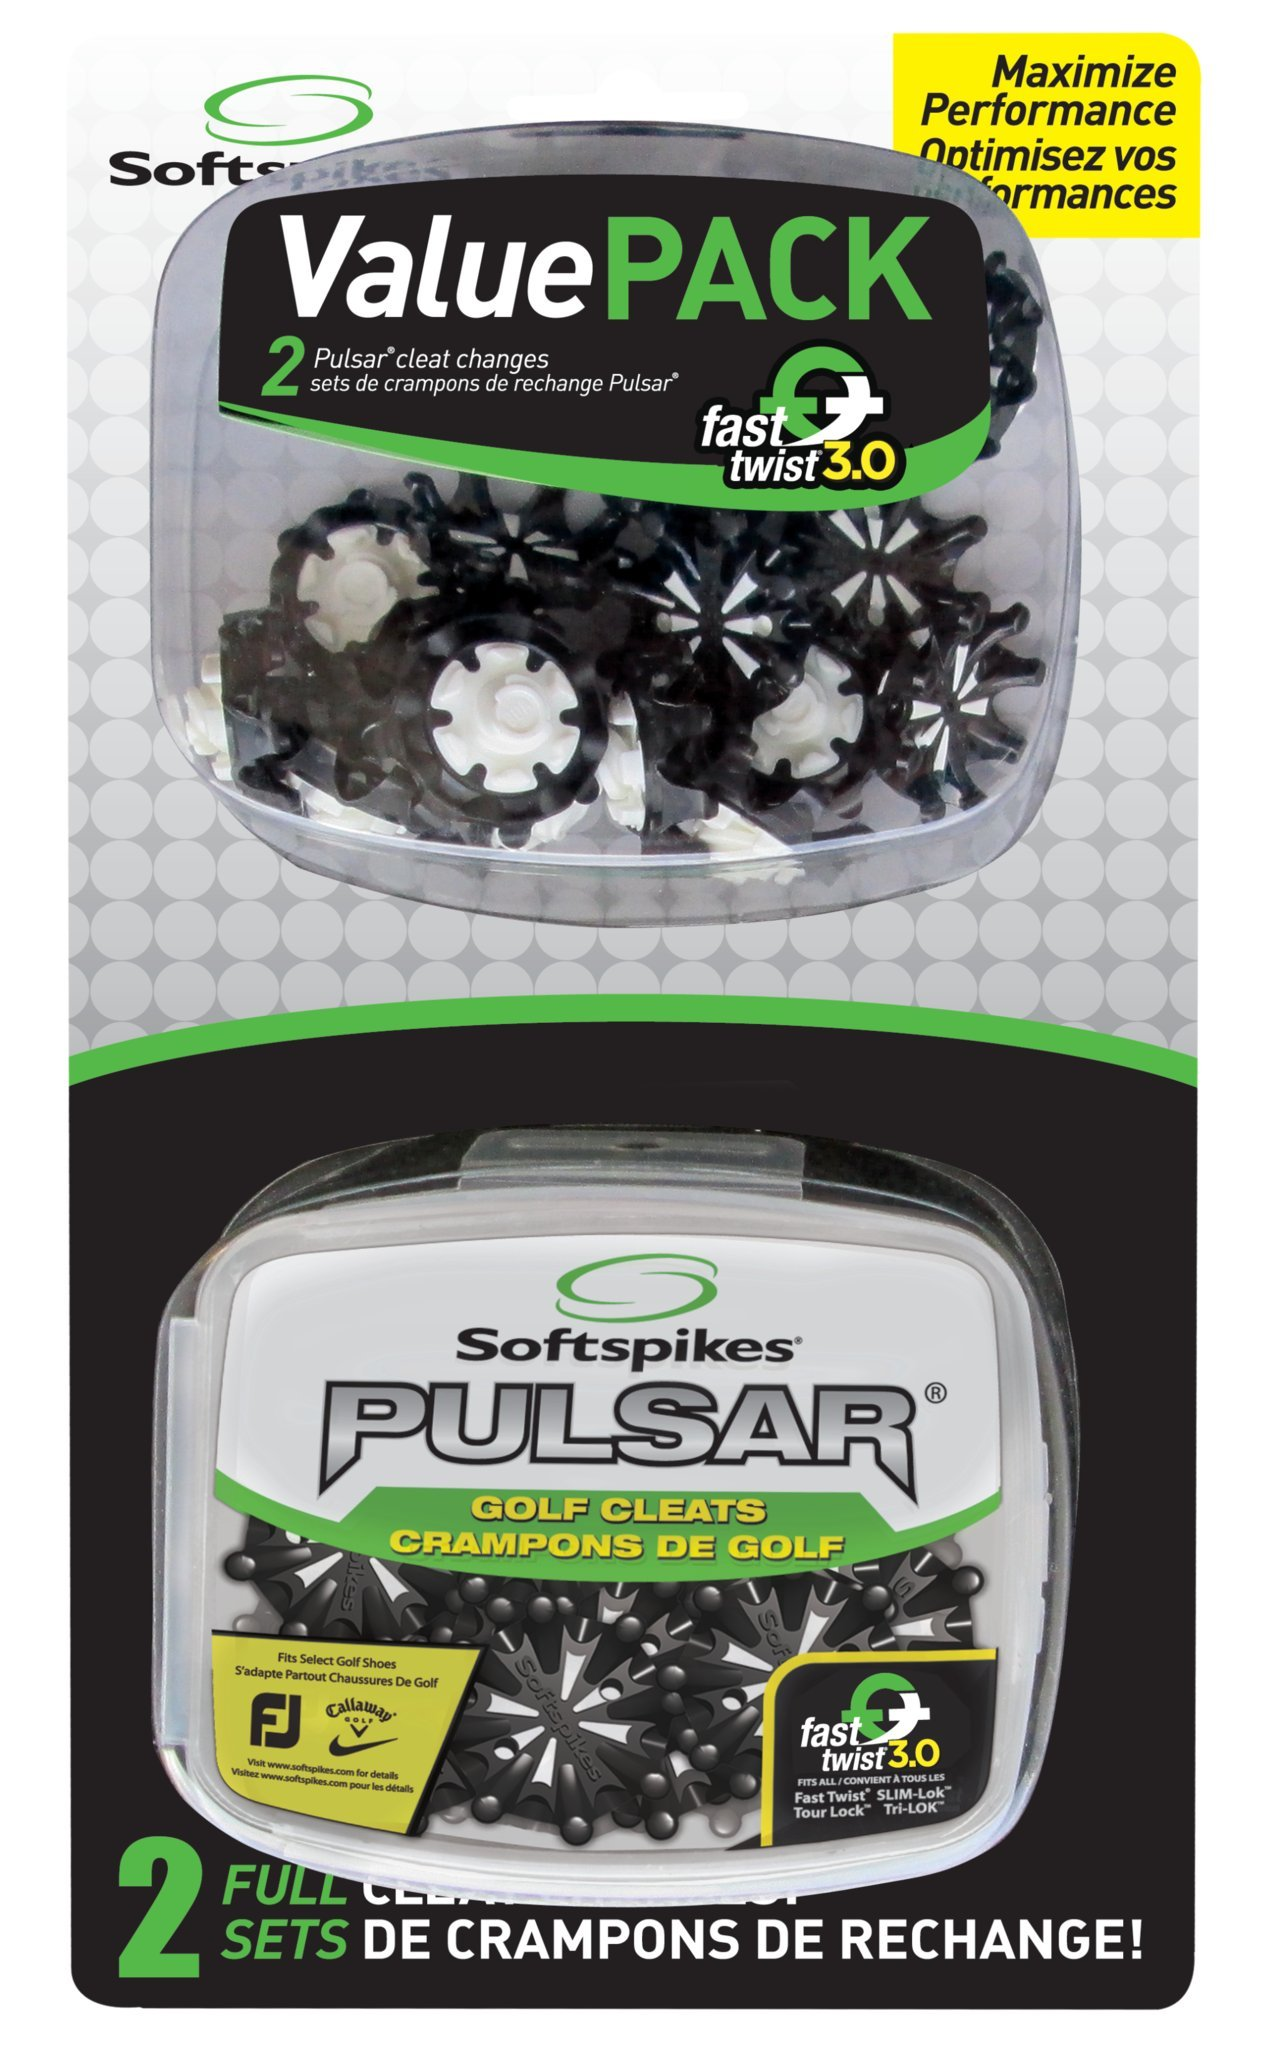 Softspikes Pulsar Golf Cleat Fast Twist Value Pack by Soft Spikes (Image #1)